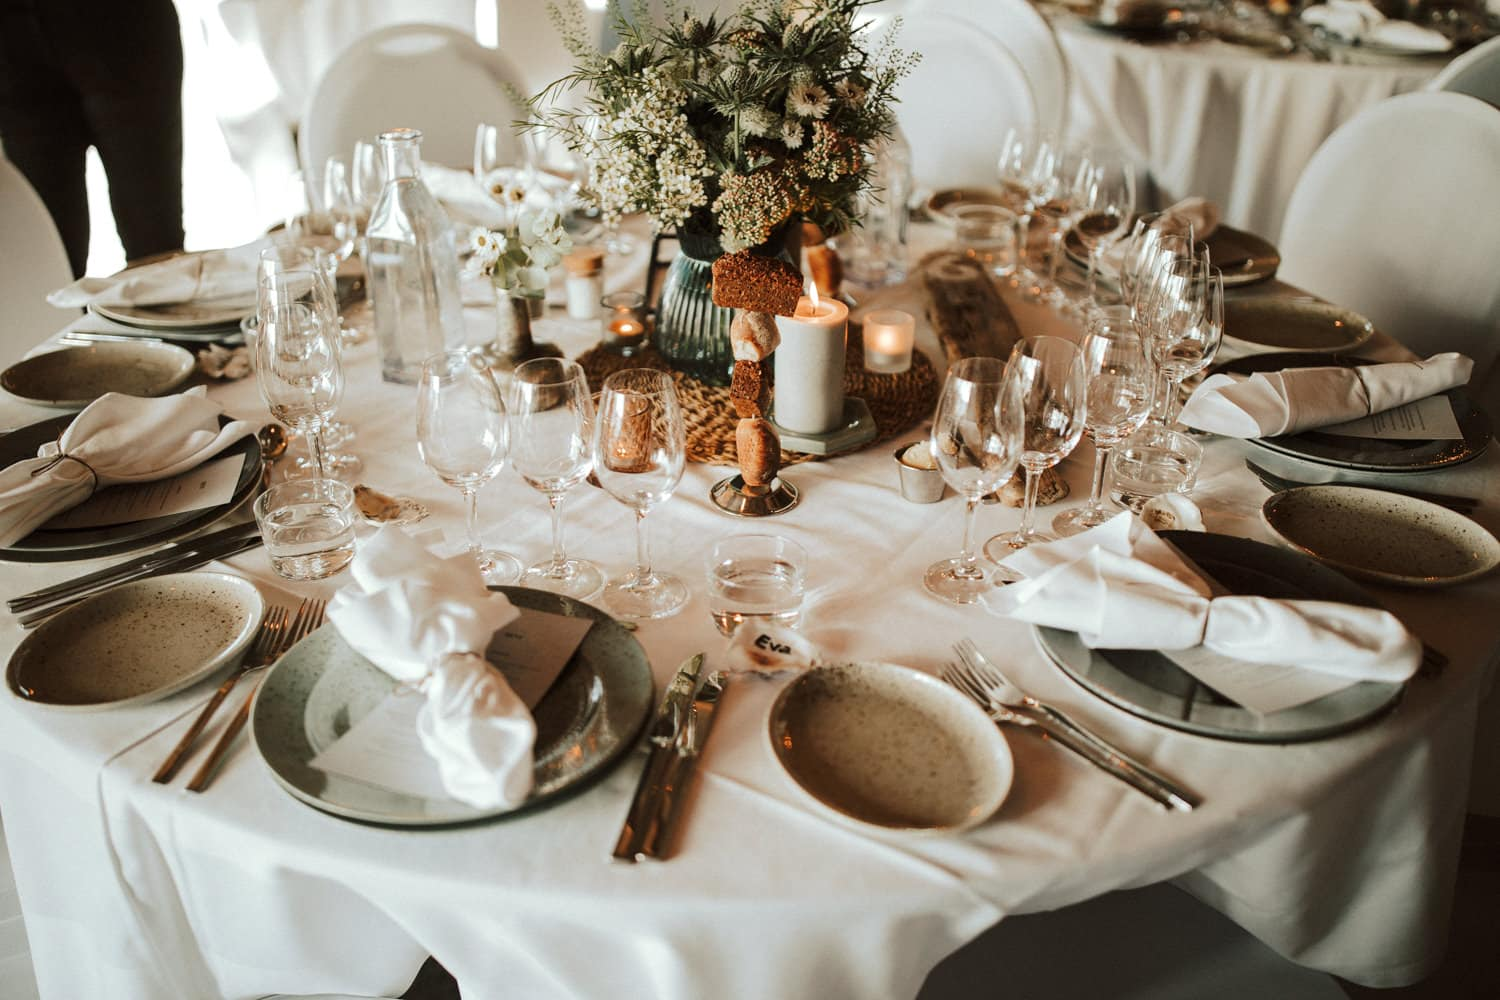 A closeup shows wedding place settings.